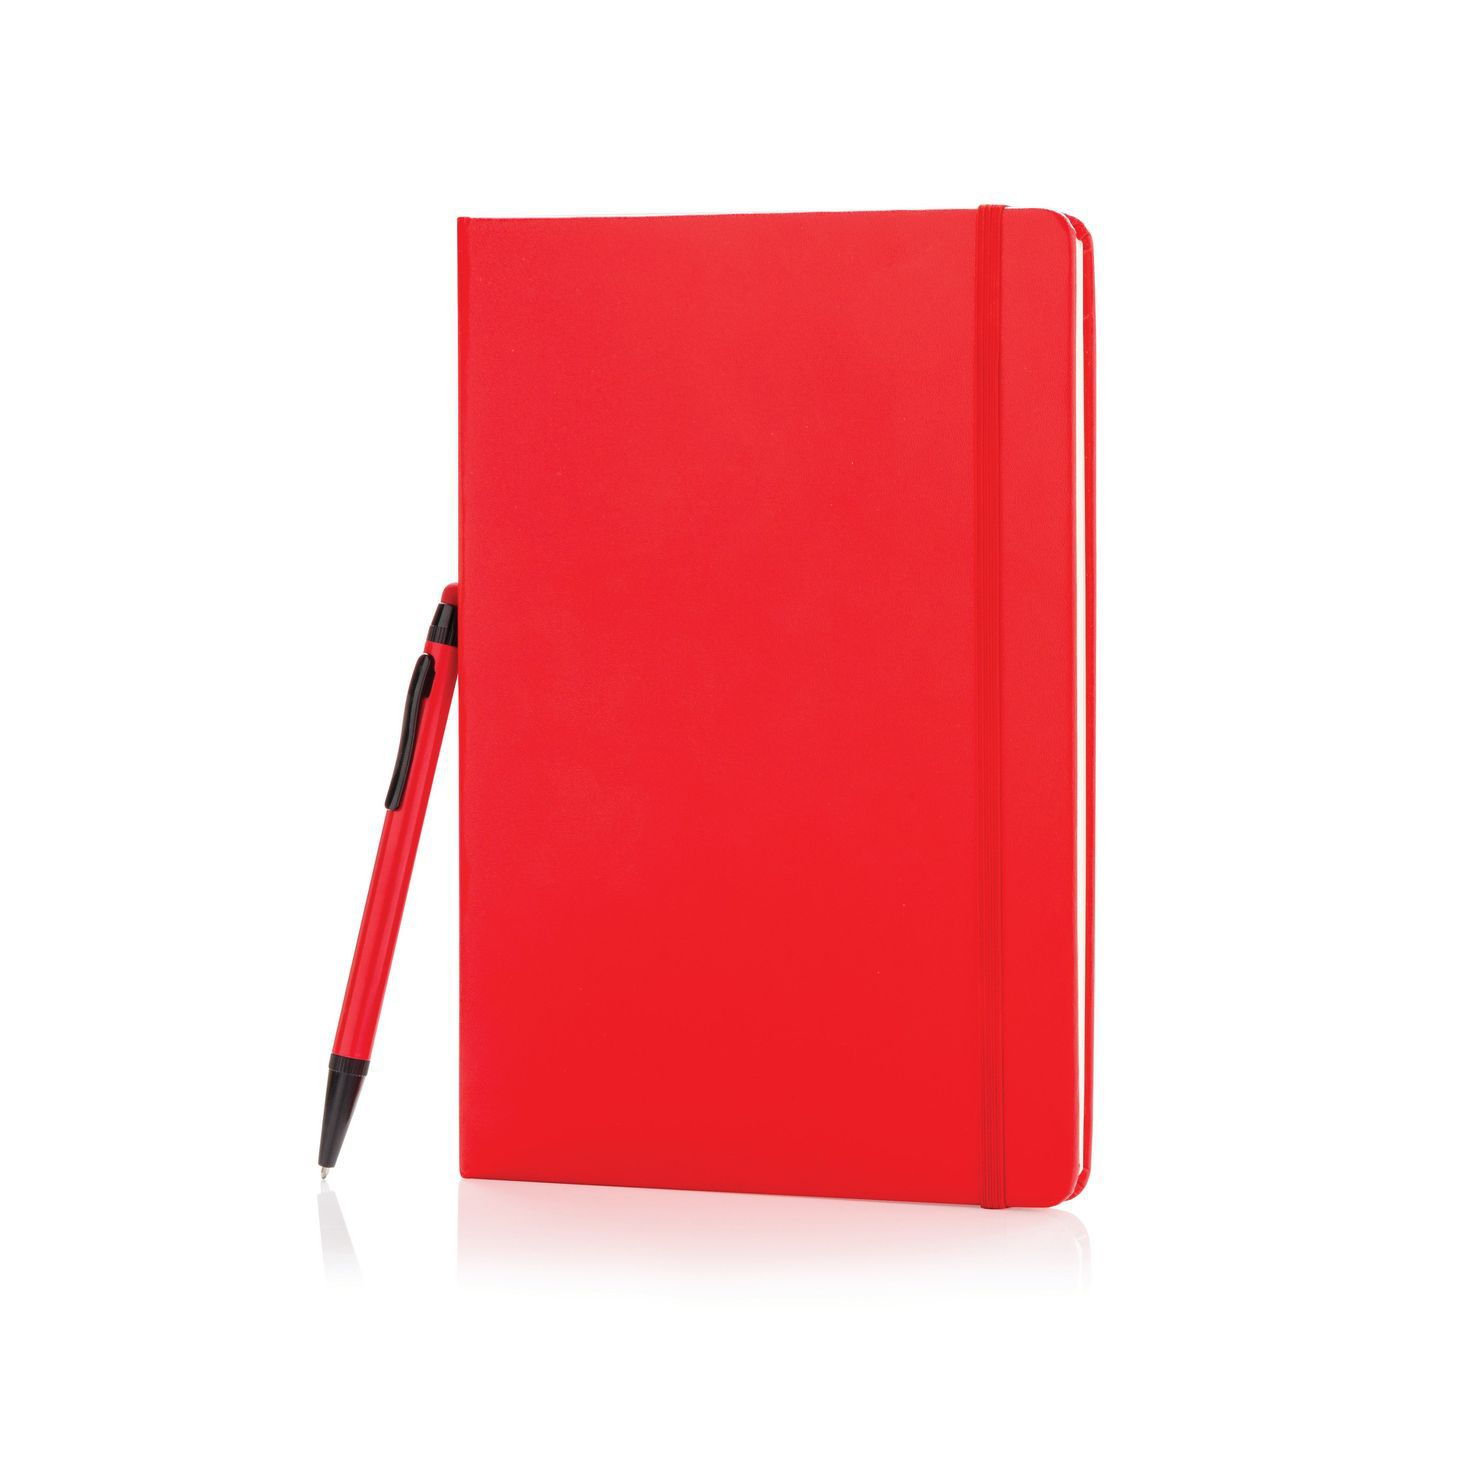 Rode Notitieboek A5 hardcover